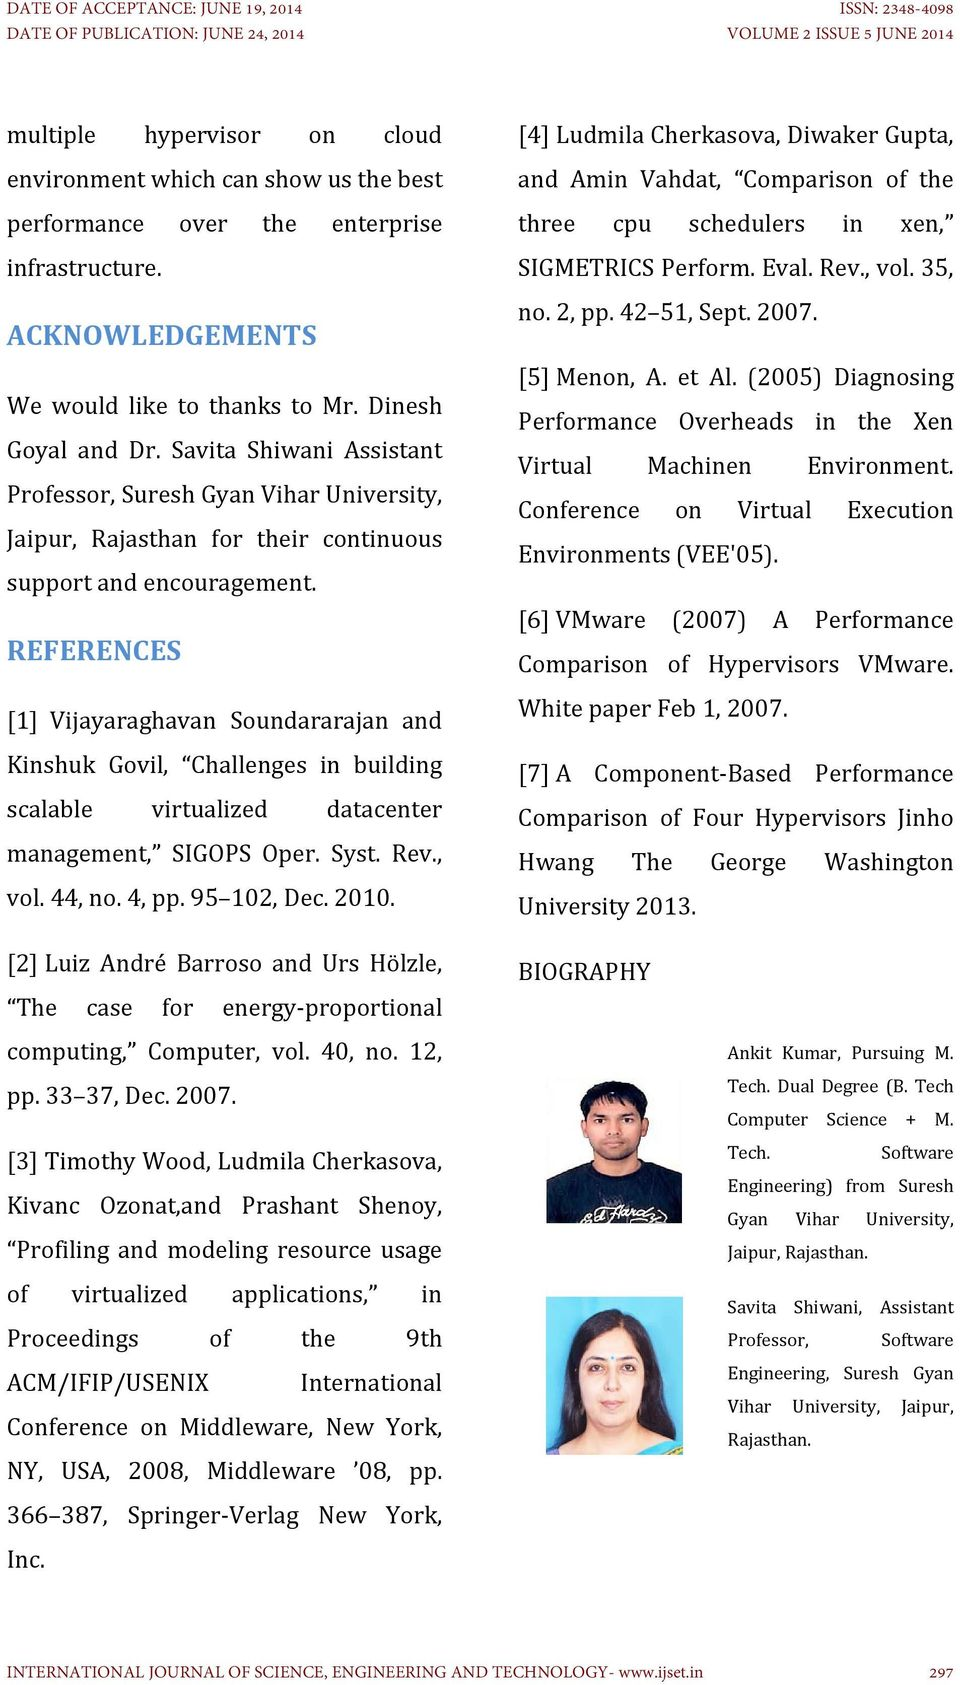 REFERENCES [1] Vijayaraghavan Soundararajan and Kinshuk Govil, Challenges in building scalable virtualized datacenter management, SIGOPS Oper. Syst. Rev., vol. 44, no. 4, pp. 95 102, Dec. 2010.